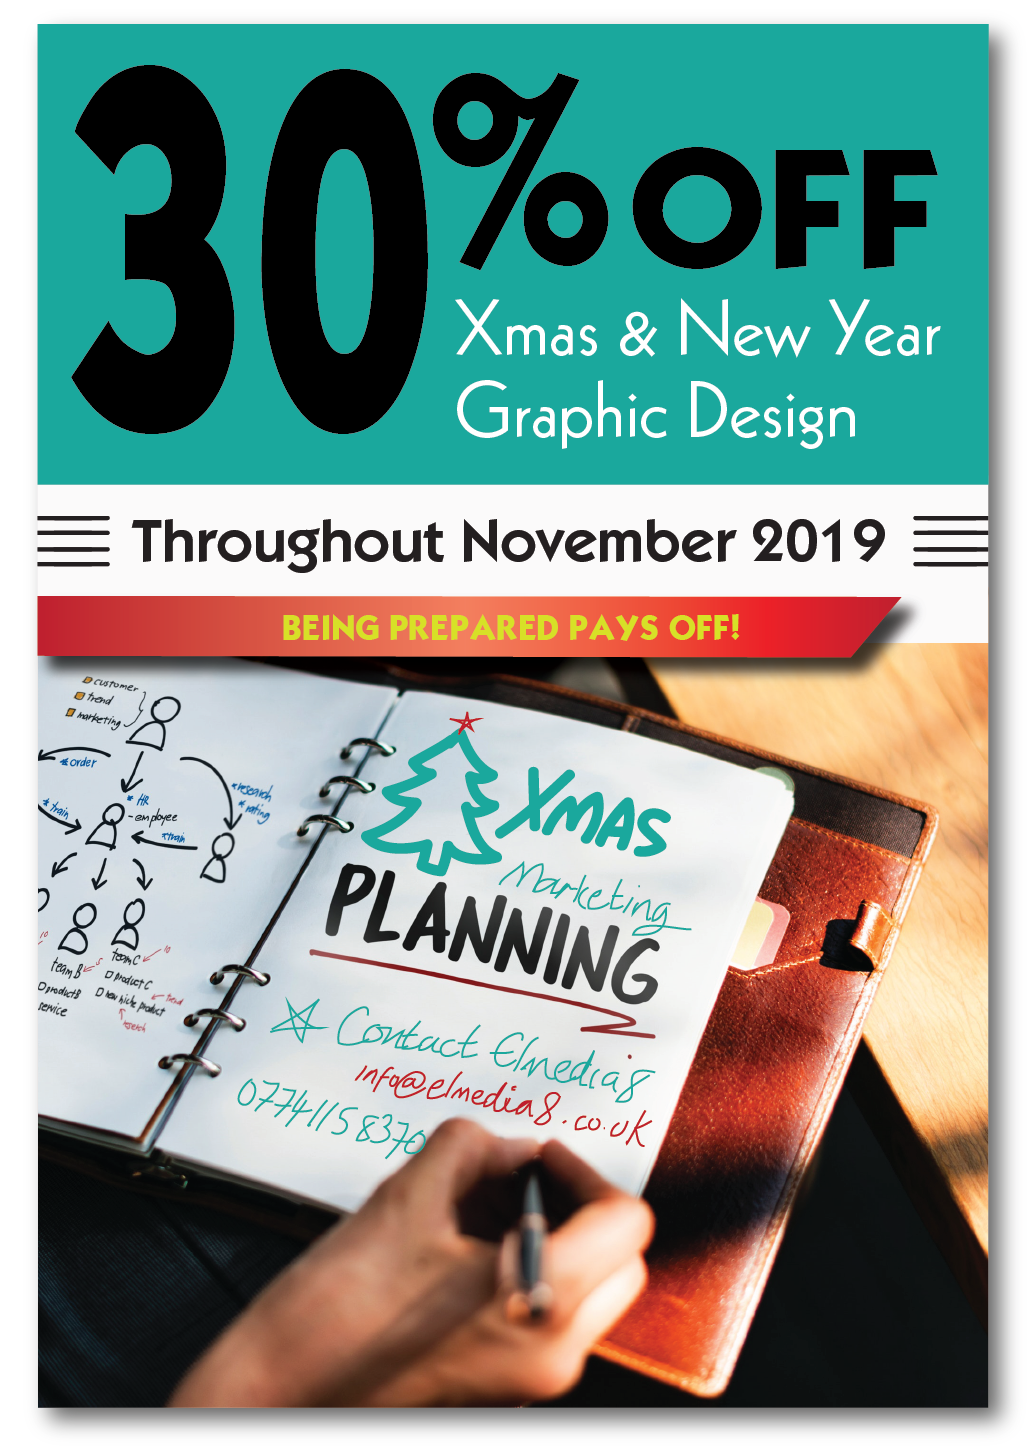 30% OFF Graphic Design